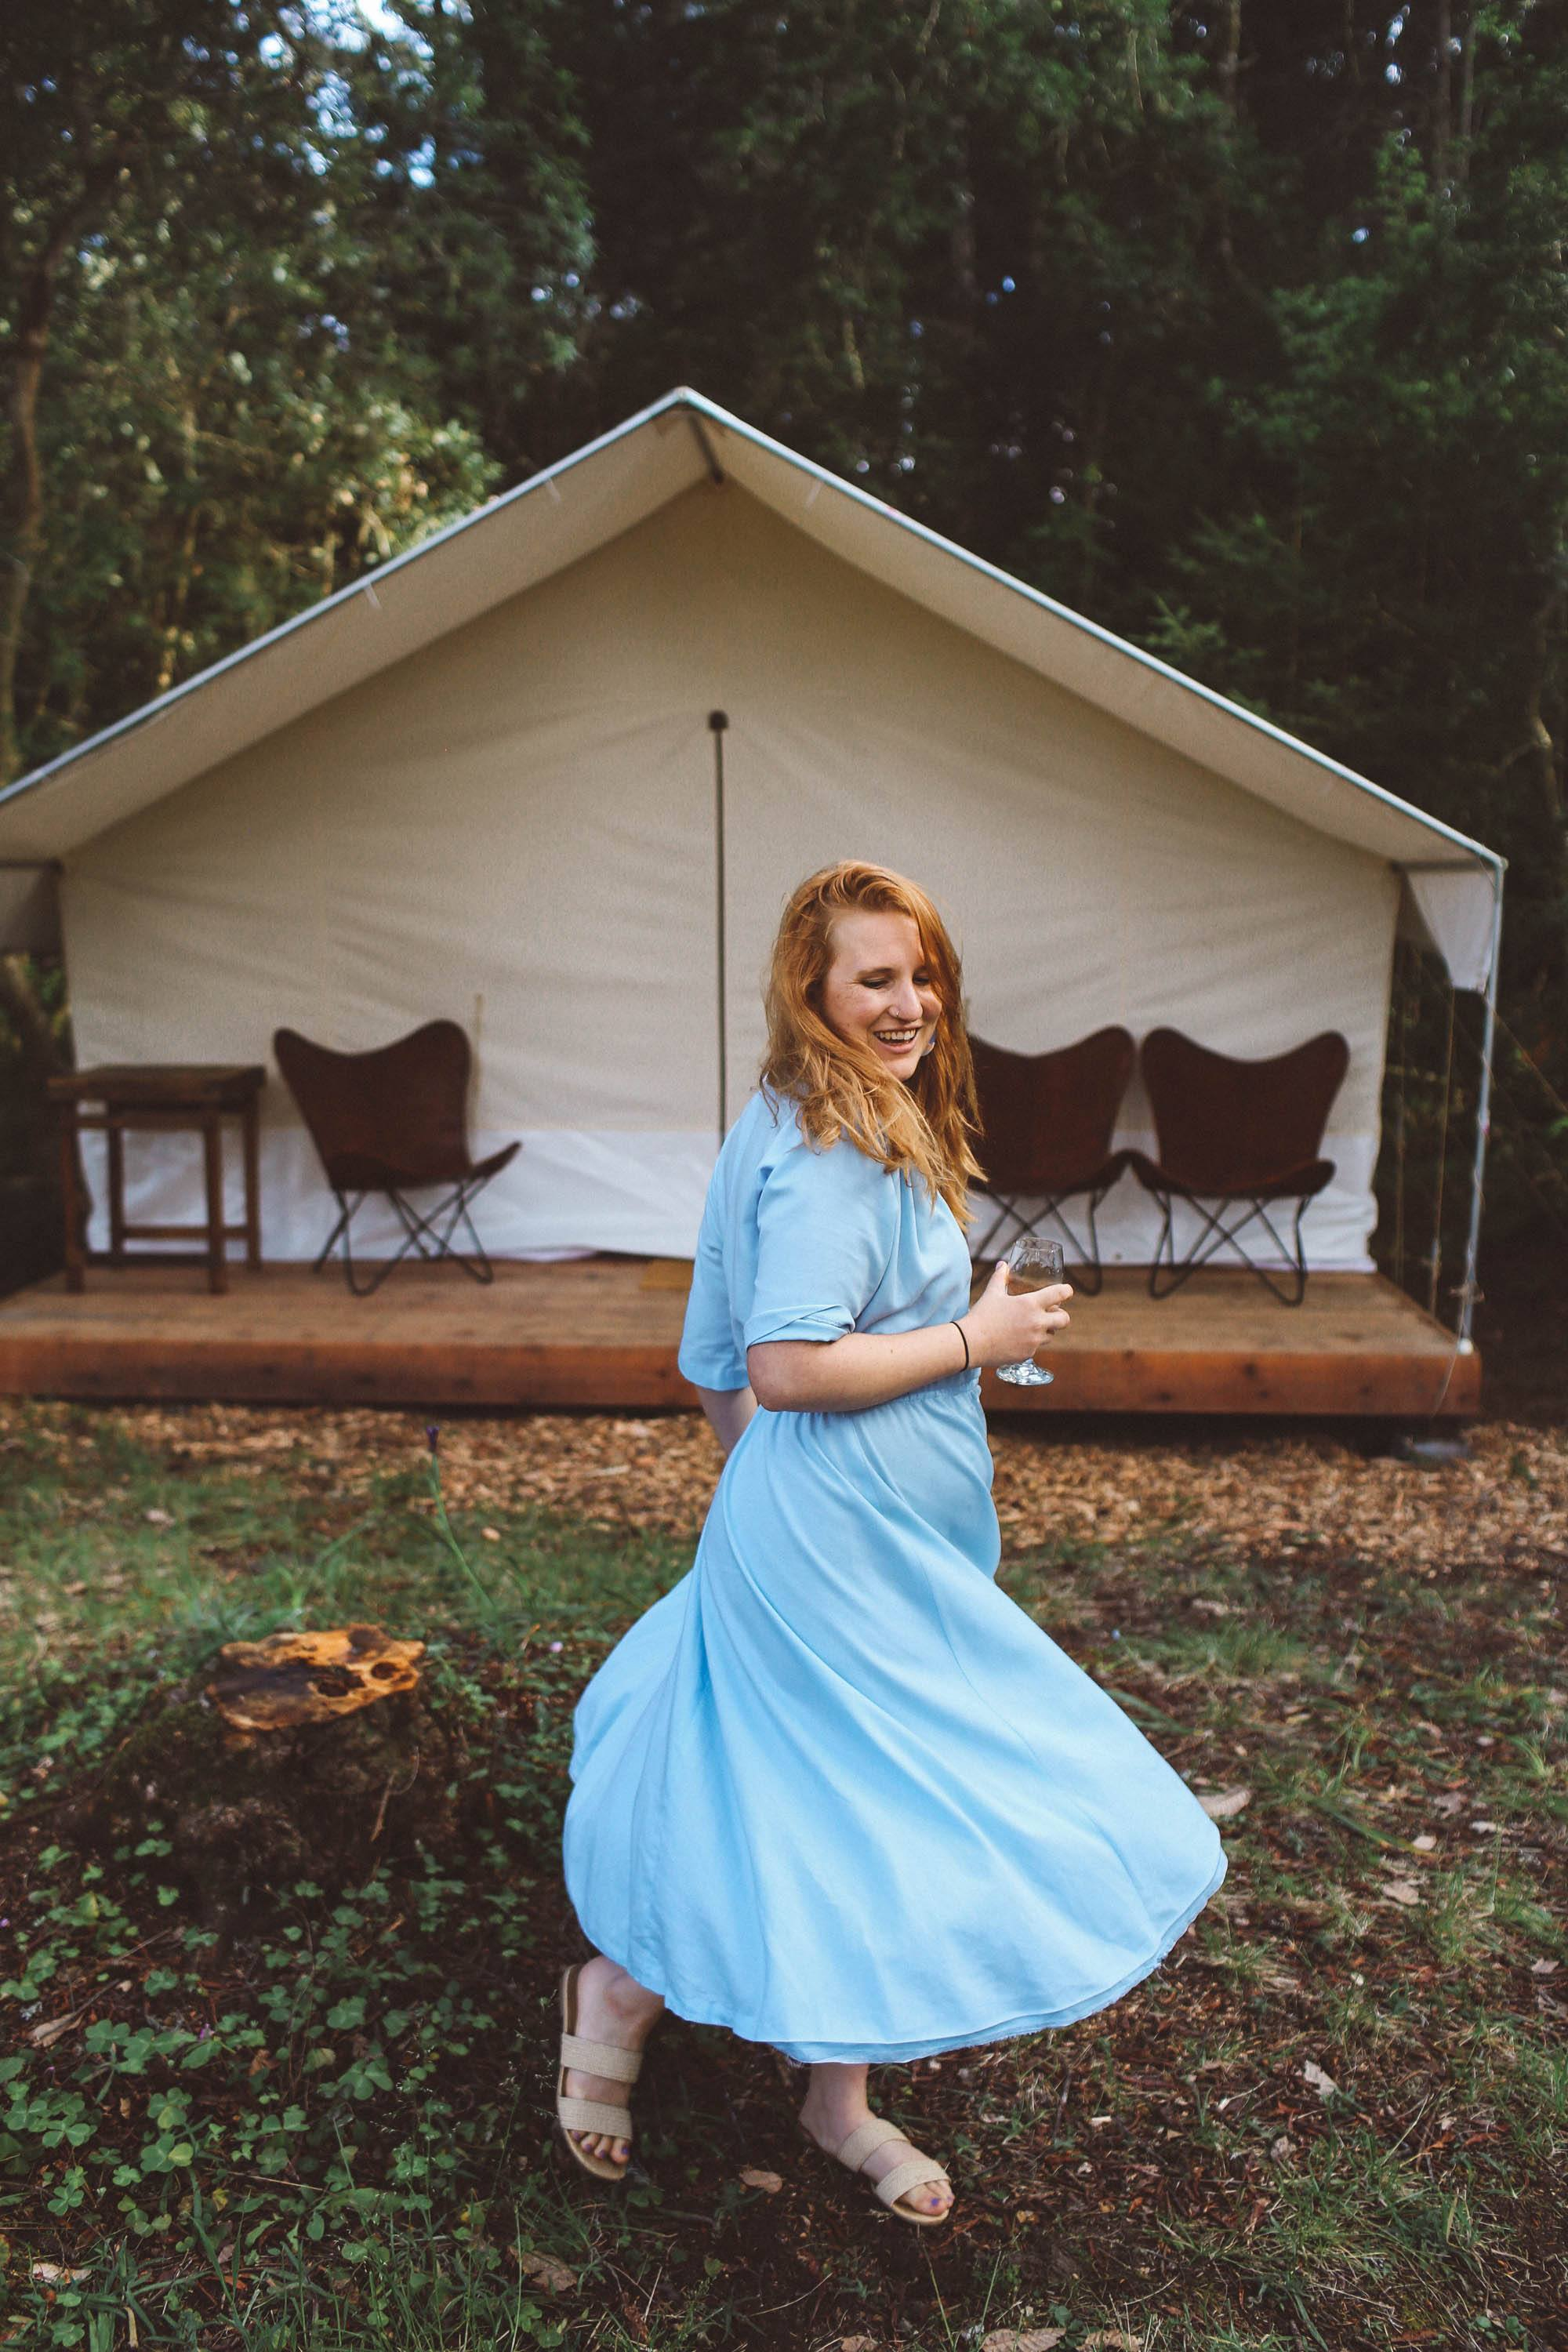 Woman wearing vintage light blue dress twirling in front of tent